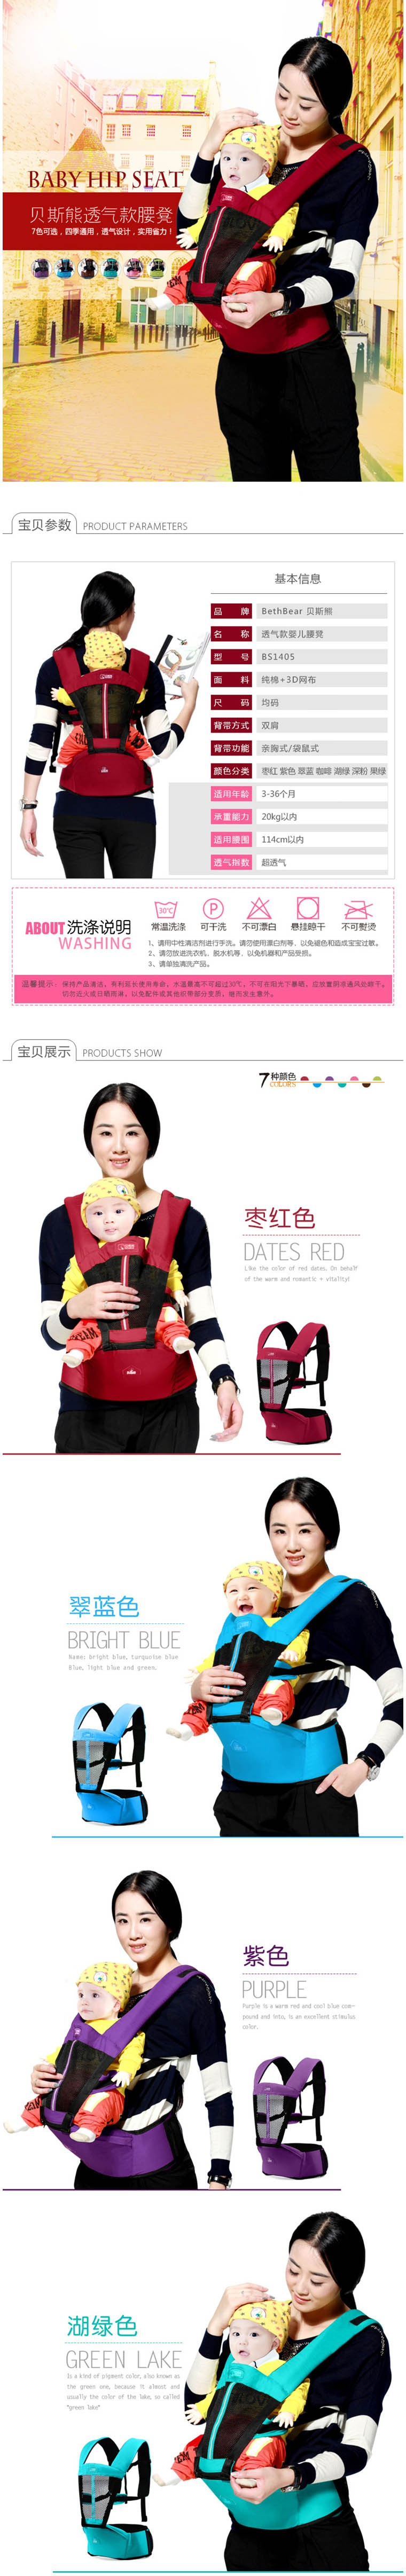 here baby backpack carrier new ergonomic baby sling Breathable multifunctional Front Facing kangaroo baby bag 2 30 months infant wrap